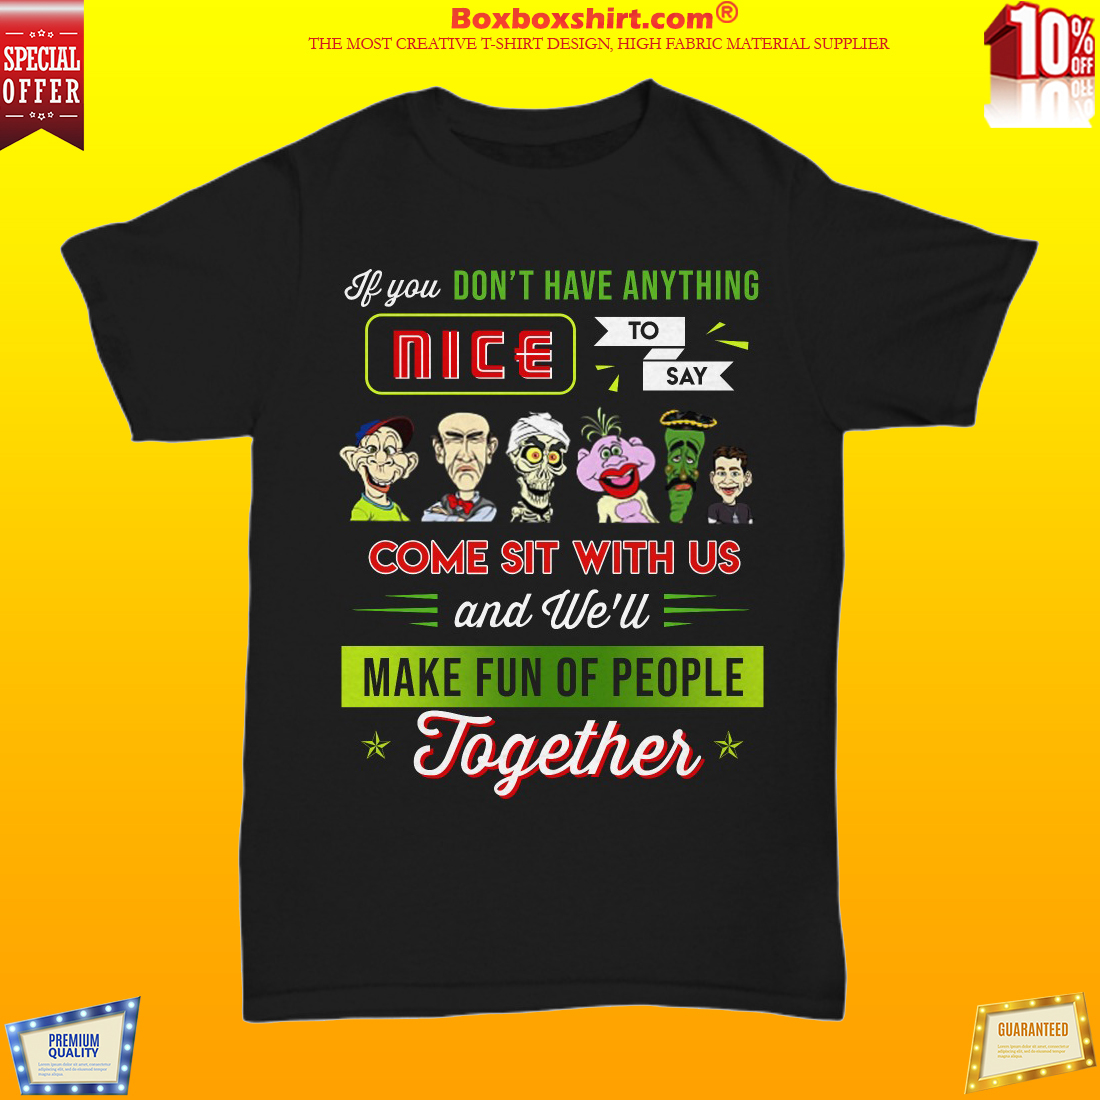 Jeff Dunham If you don't have anything nice to say come sit with us unisex shirt